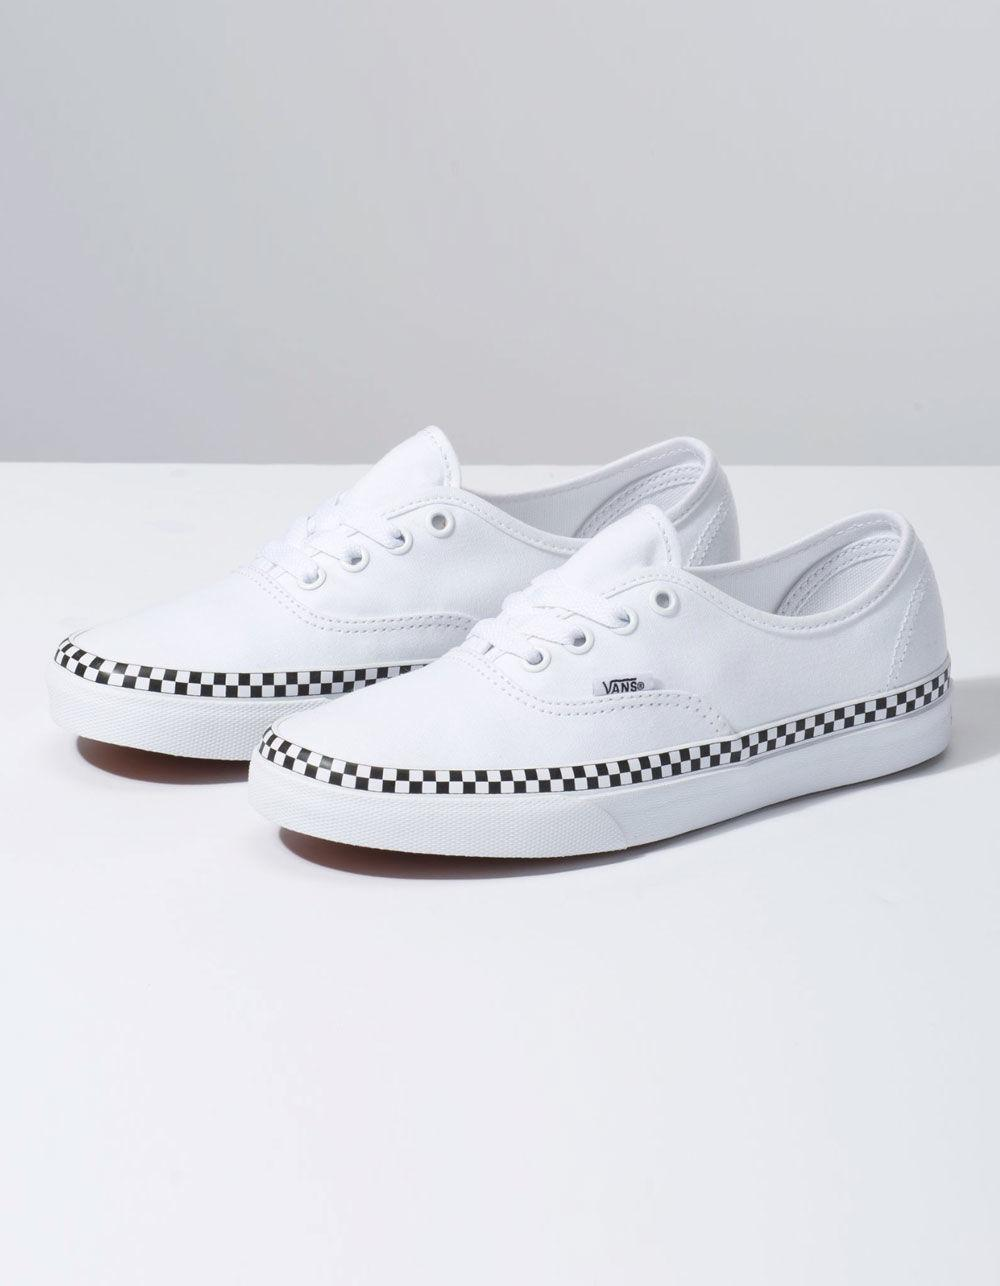 0b9c1f27000 Lyst - Vans Check Foxing Authentic True White Womens Shoes in White